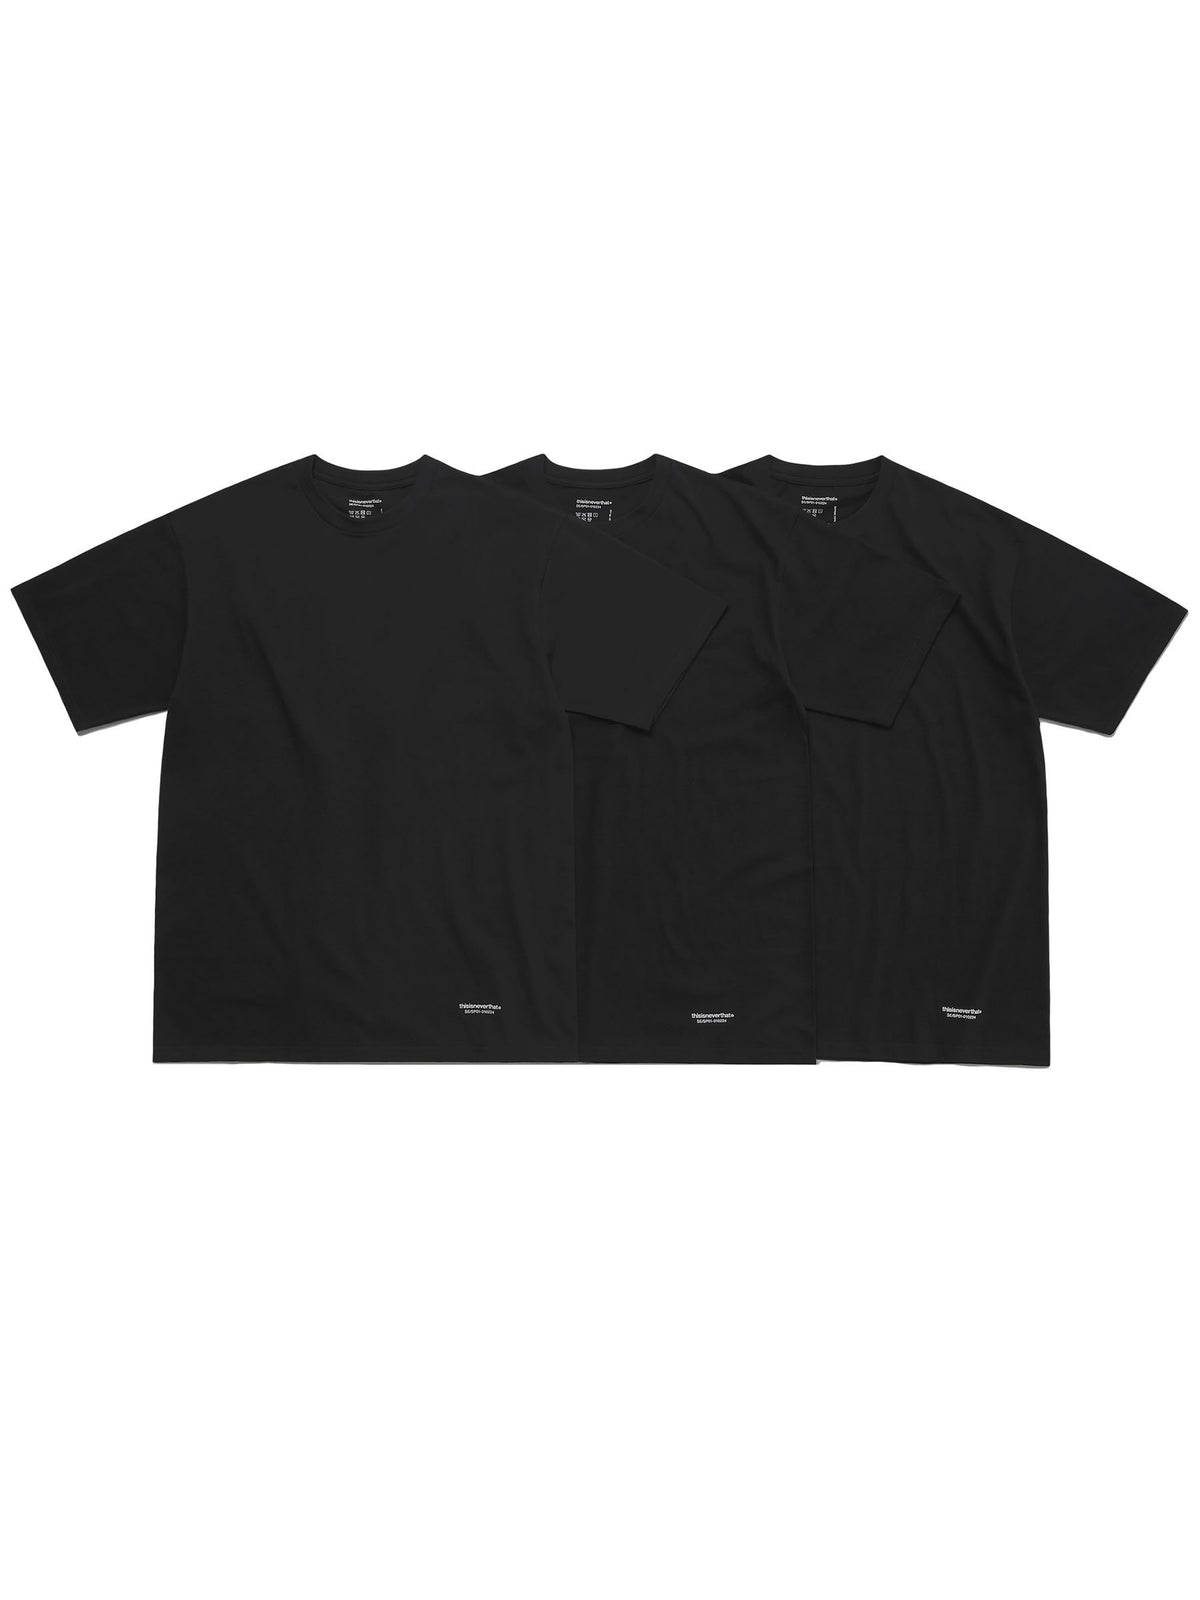 3 TAGLESS T-SHIRTS - thisisneverthat